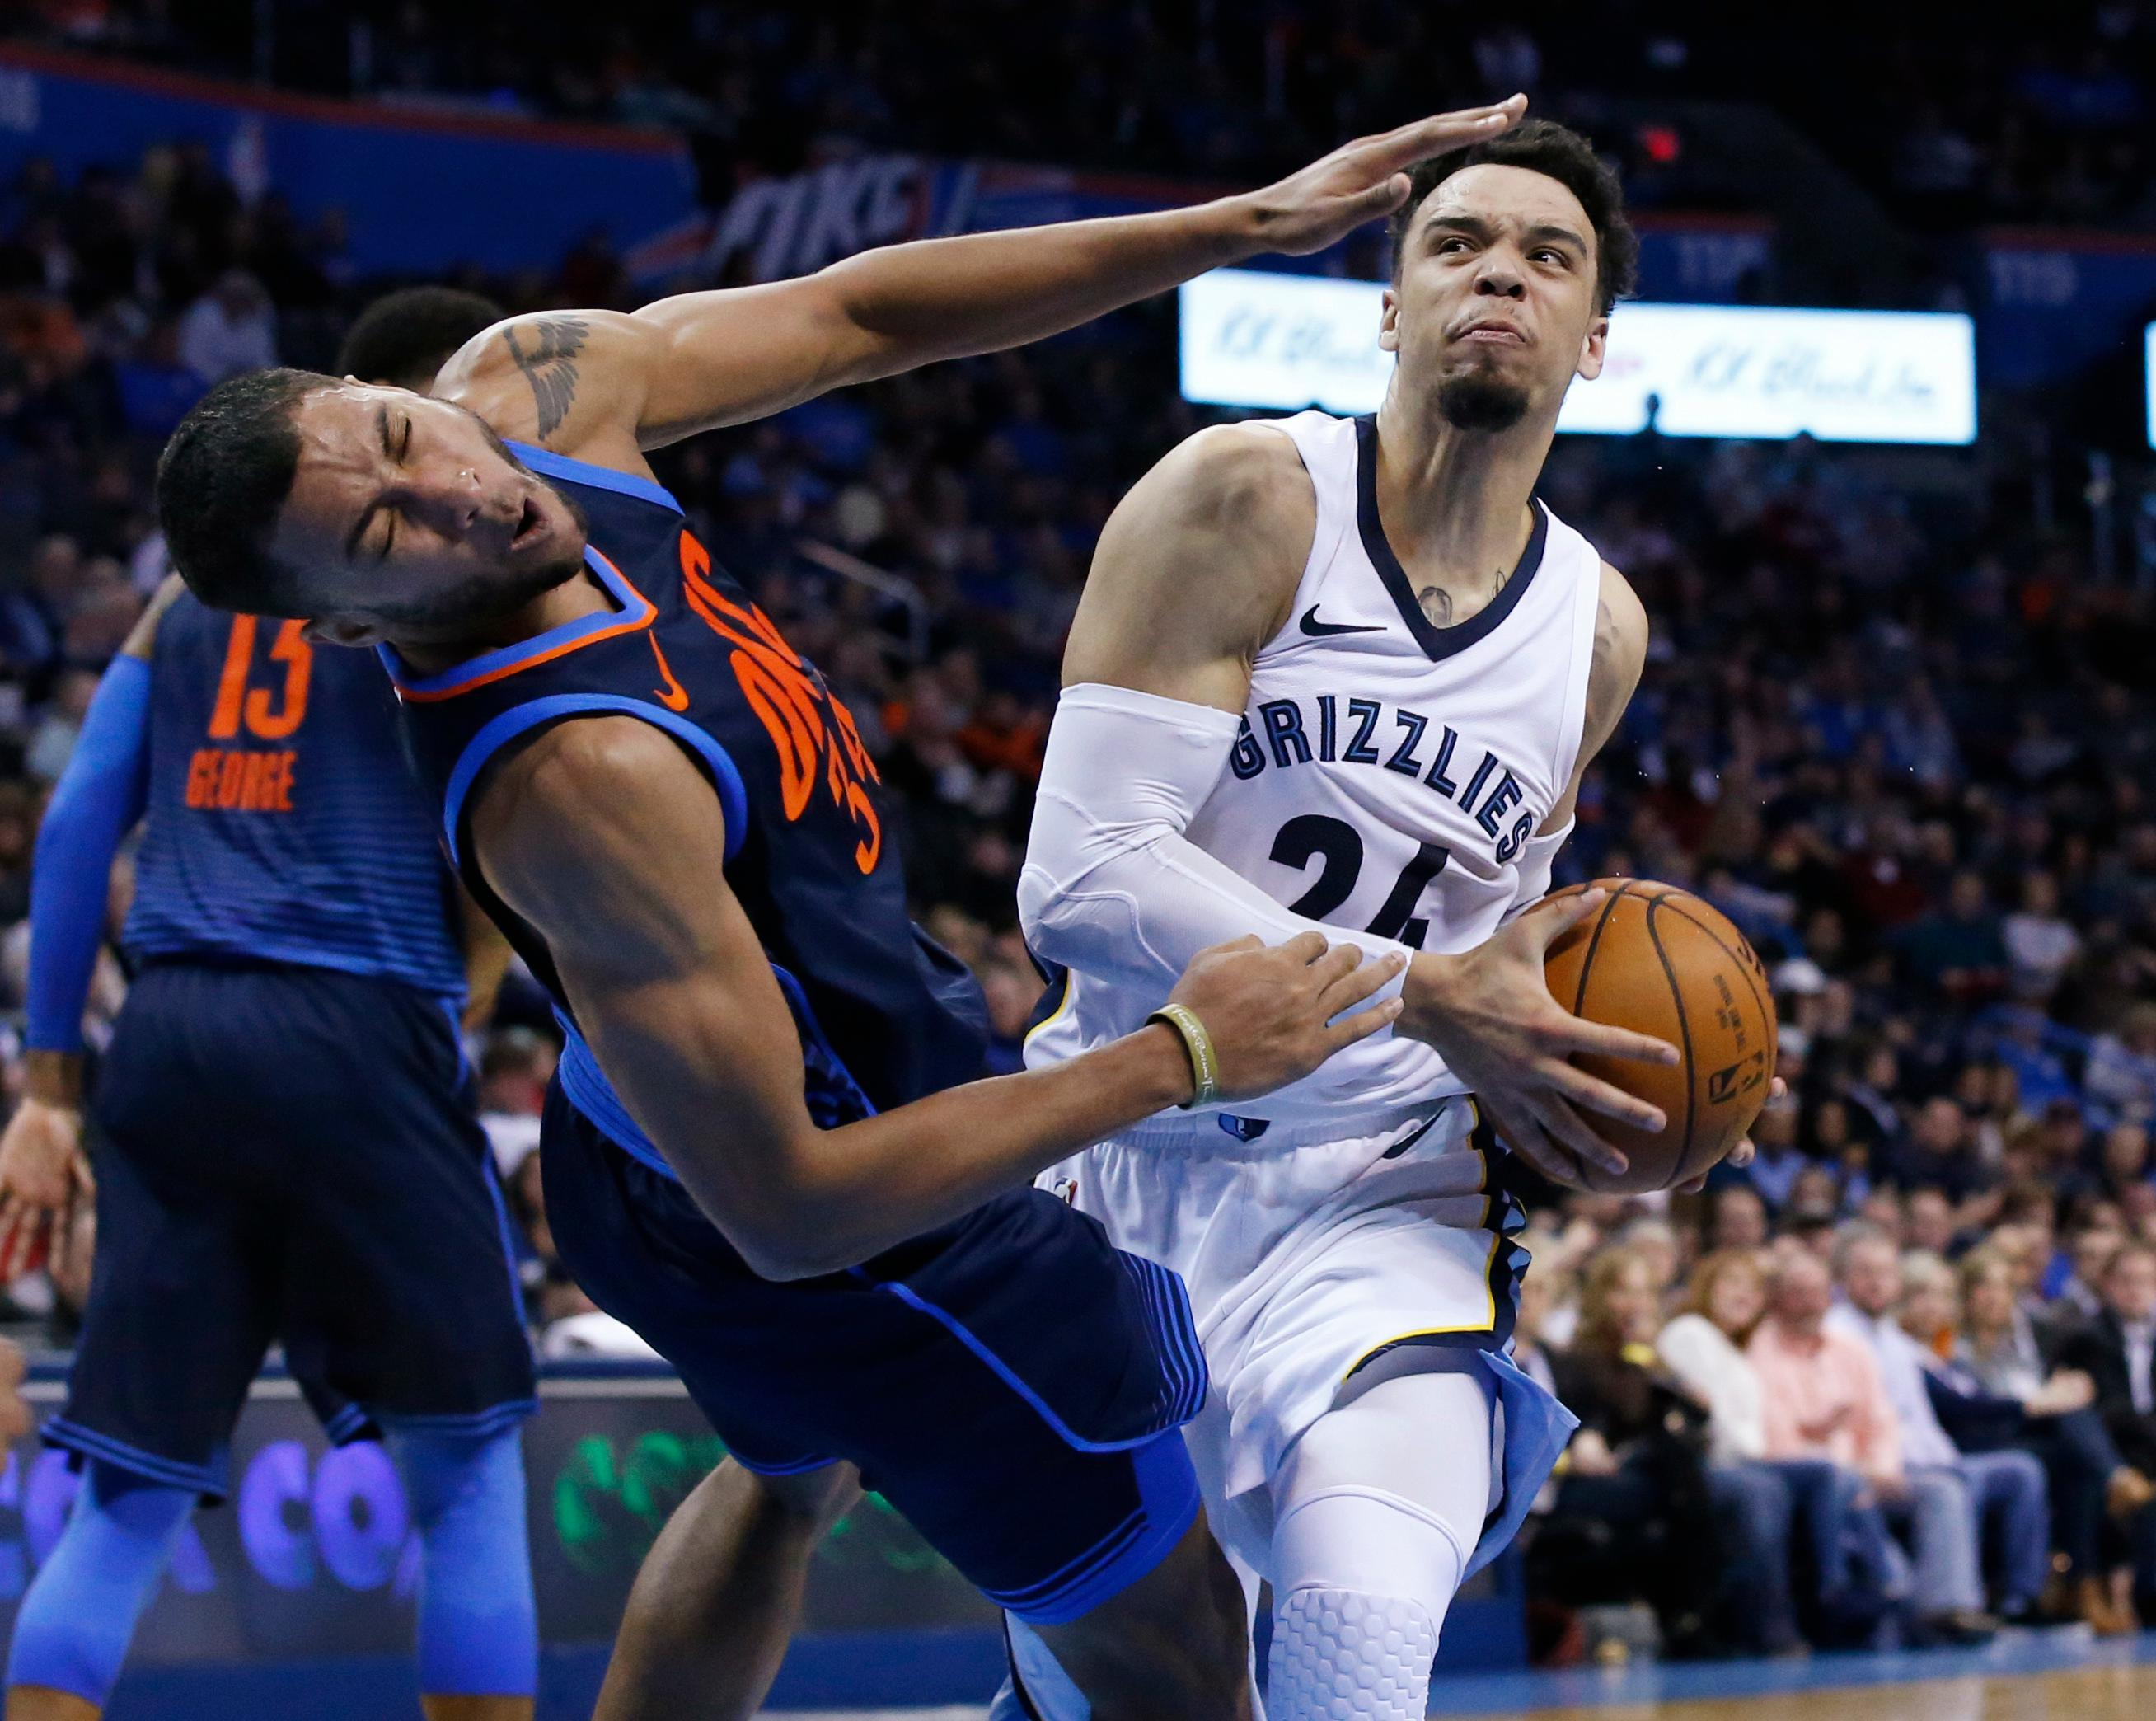 Oklahoma City Thunder forward Josh Huestis left, grimaces as he is fouled by Memphis Grizzlies forward Dillon Brooks, right, in the first half of an NBA basketball game in Oklahoma City, Sunday, Feb. 11, 2018. (AP Photo/Sue Ogrocki)